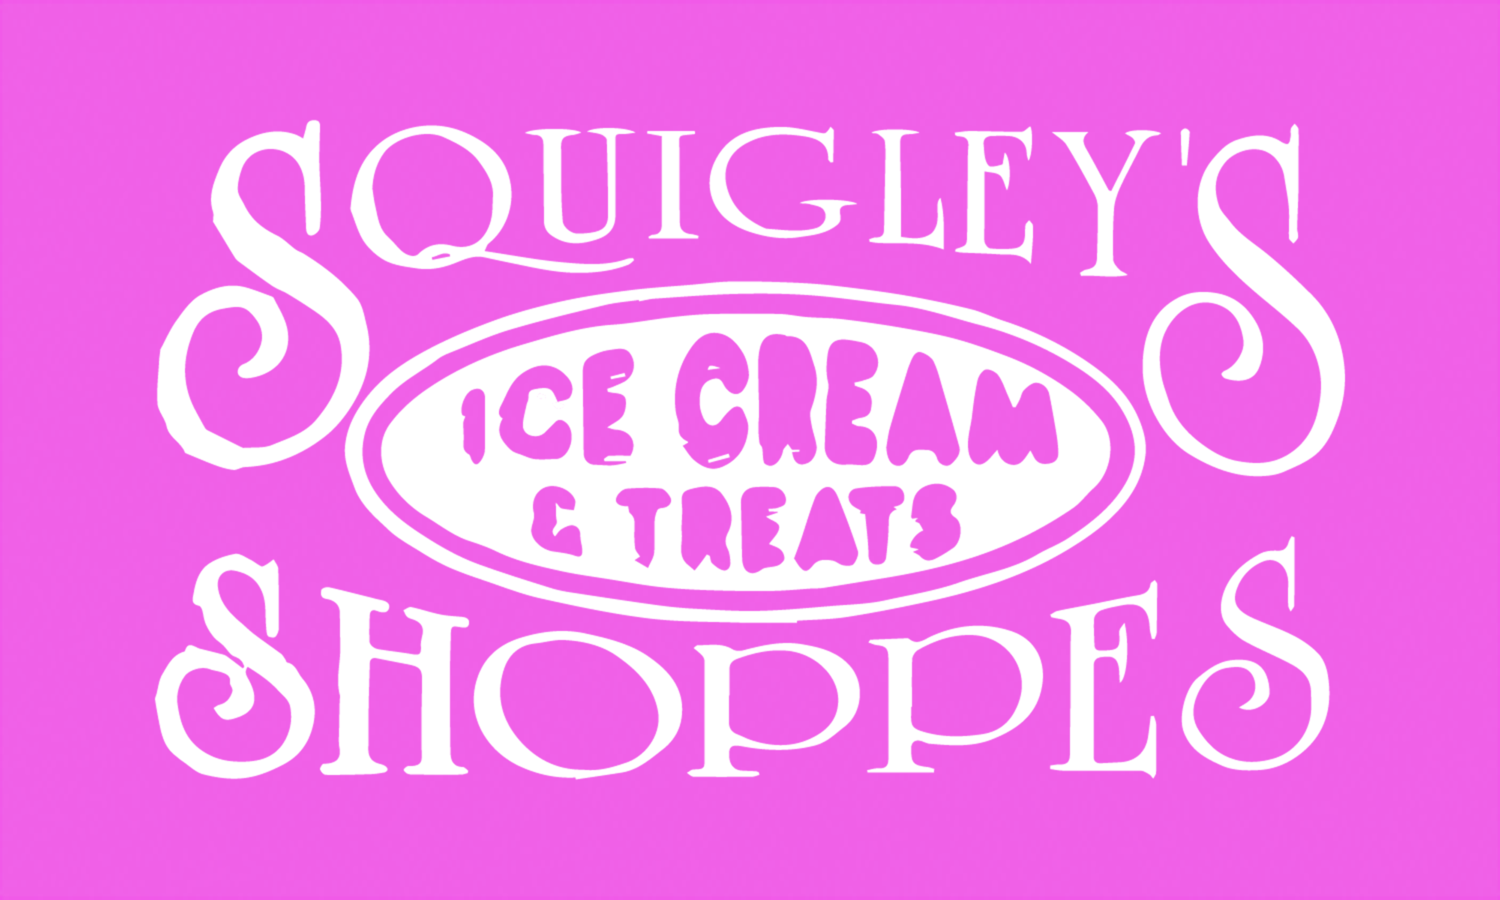 Squigley's® Ice Cream & Treats